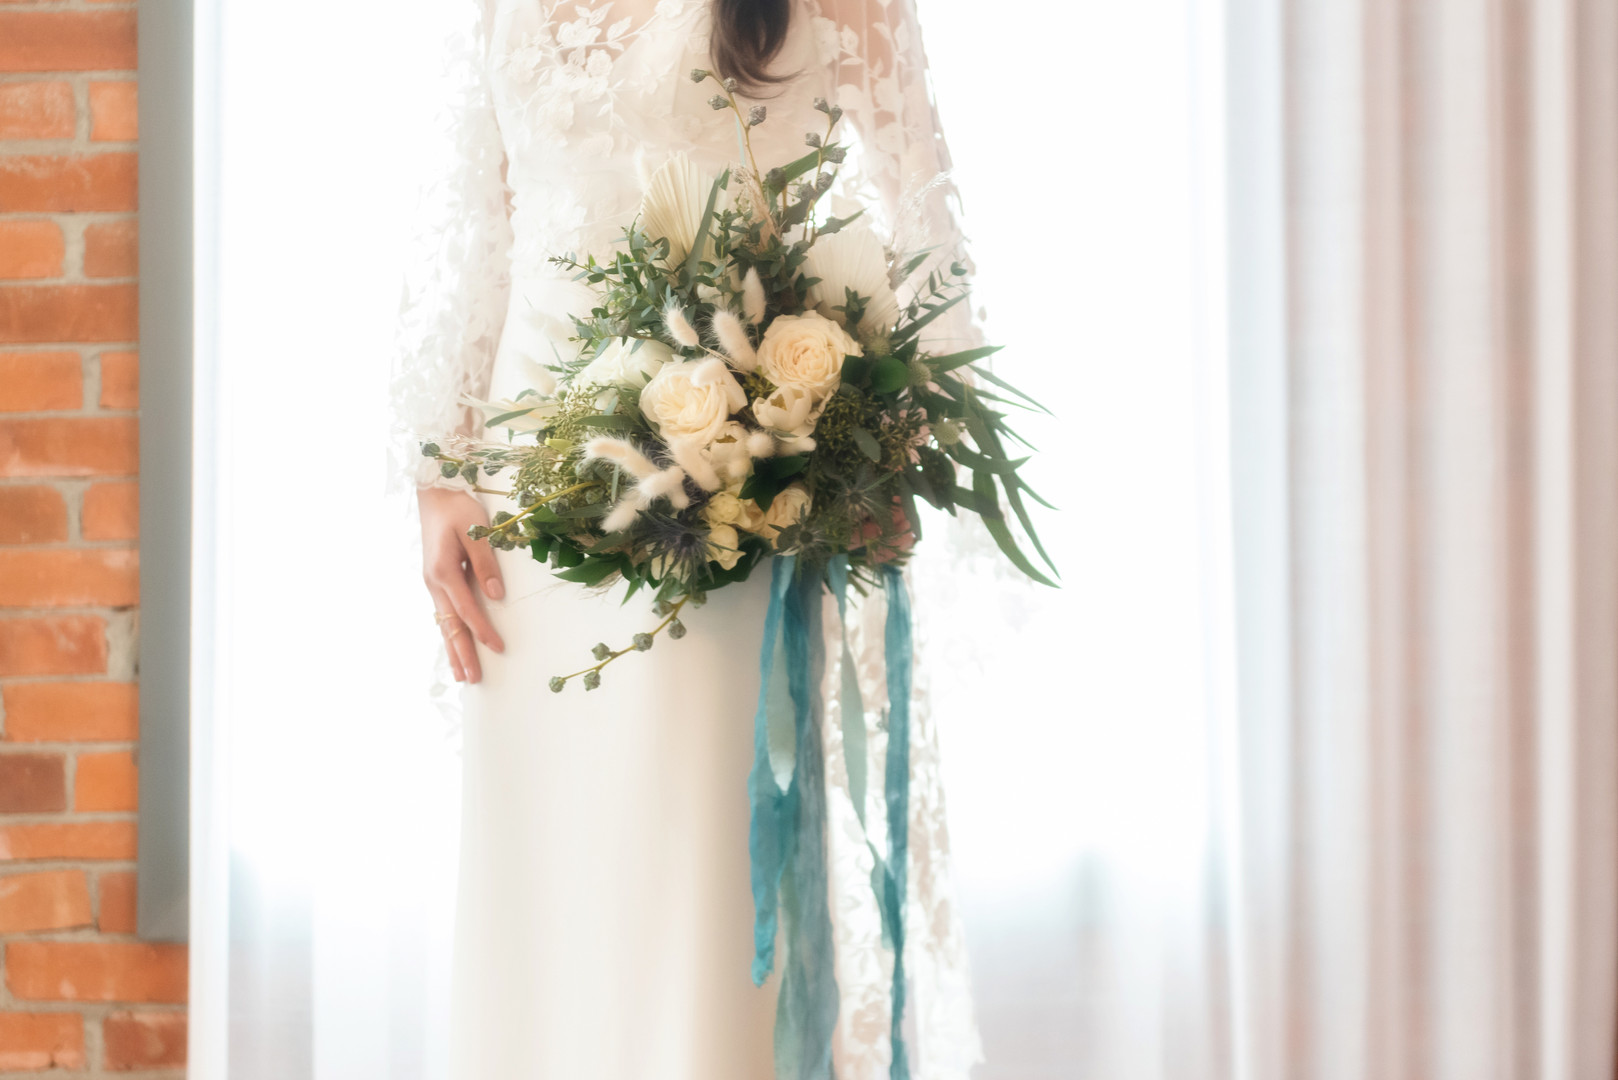 Stunning Boho Wedding Bouquet by Creative Edge Flowers